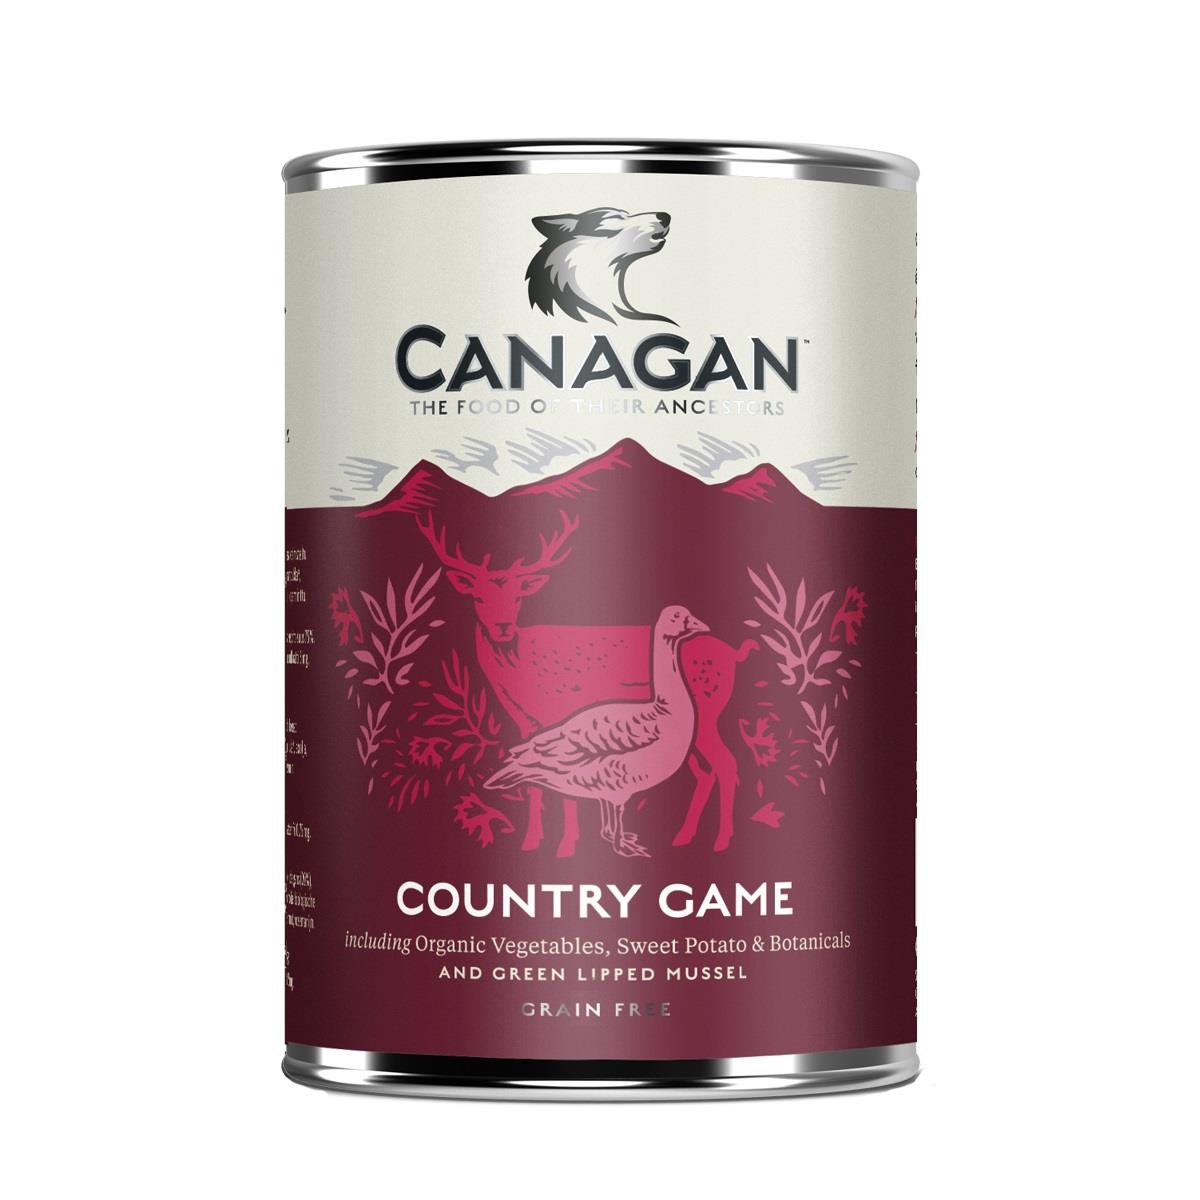 Canagan Boksemat Hund Country Game 6stk x 400g (Pk pris)